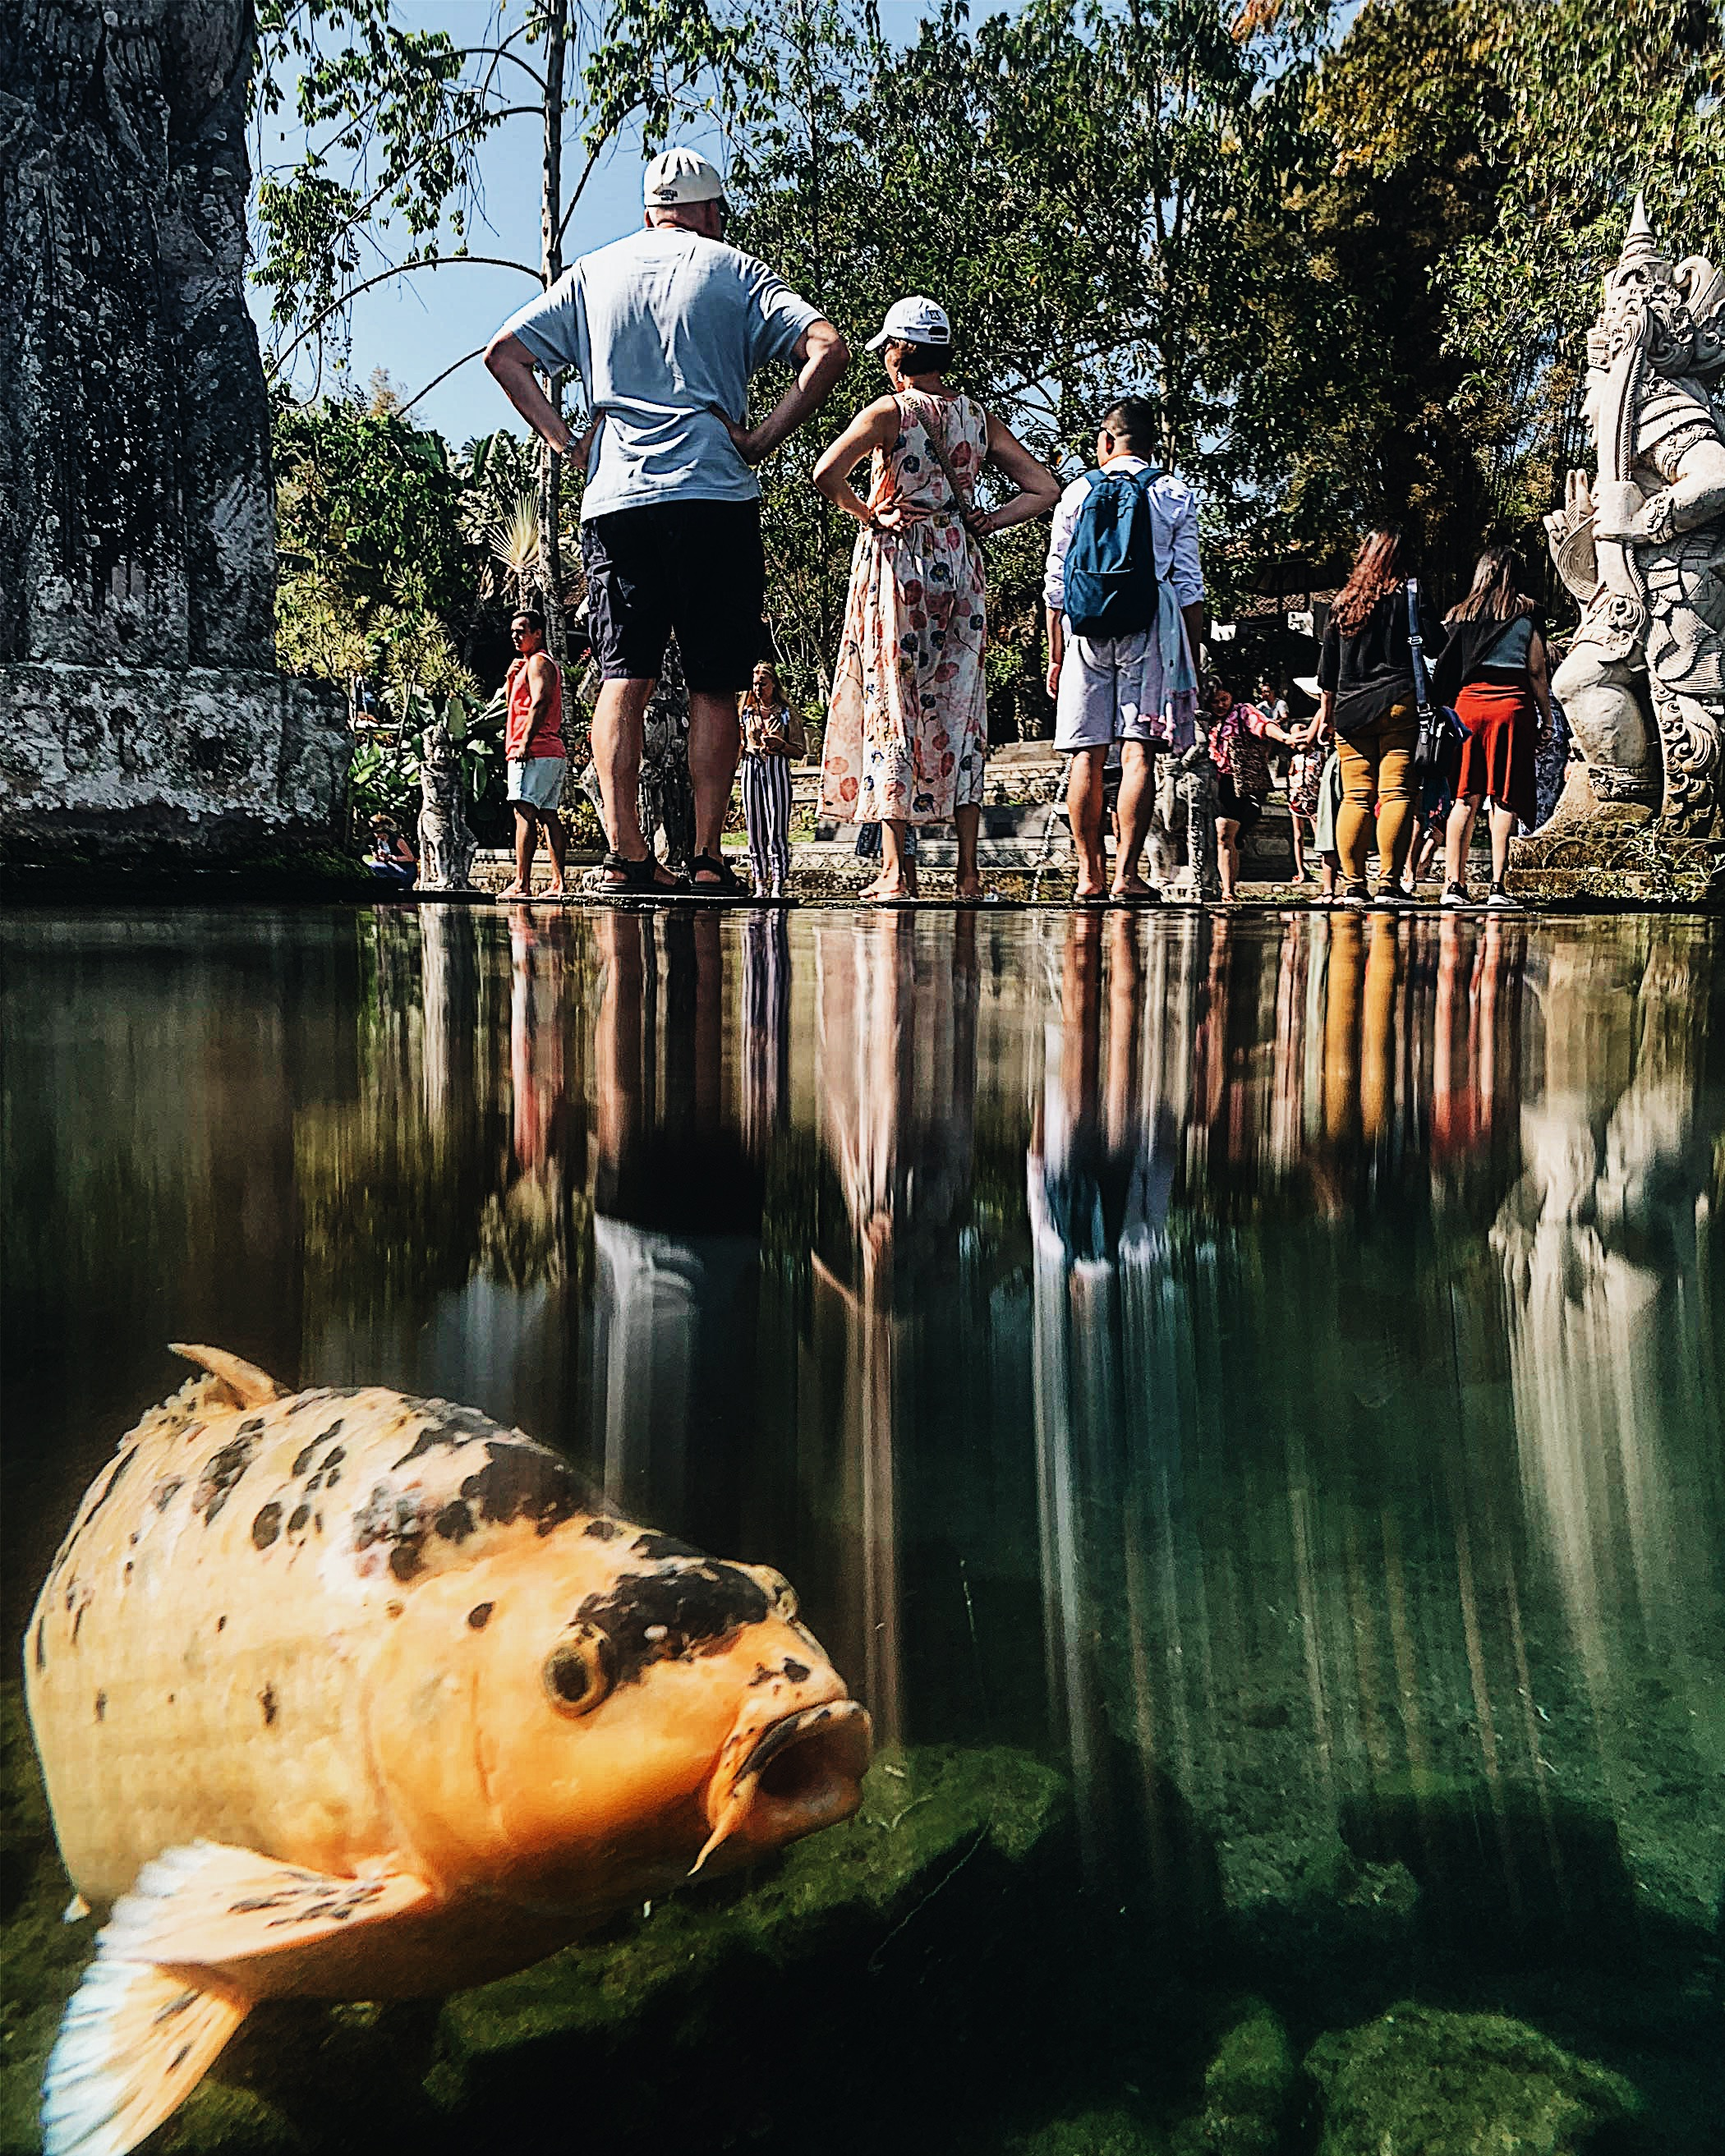 Mass tourism in Bali, behind the scenes of temples and other tourist places. Photo people and fish